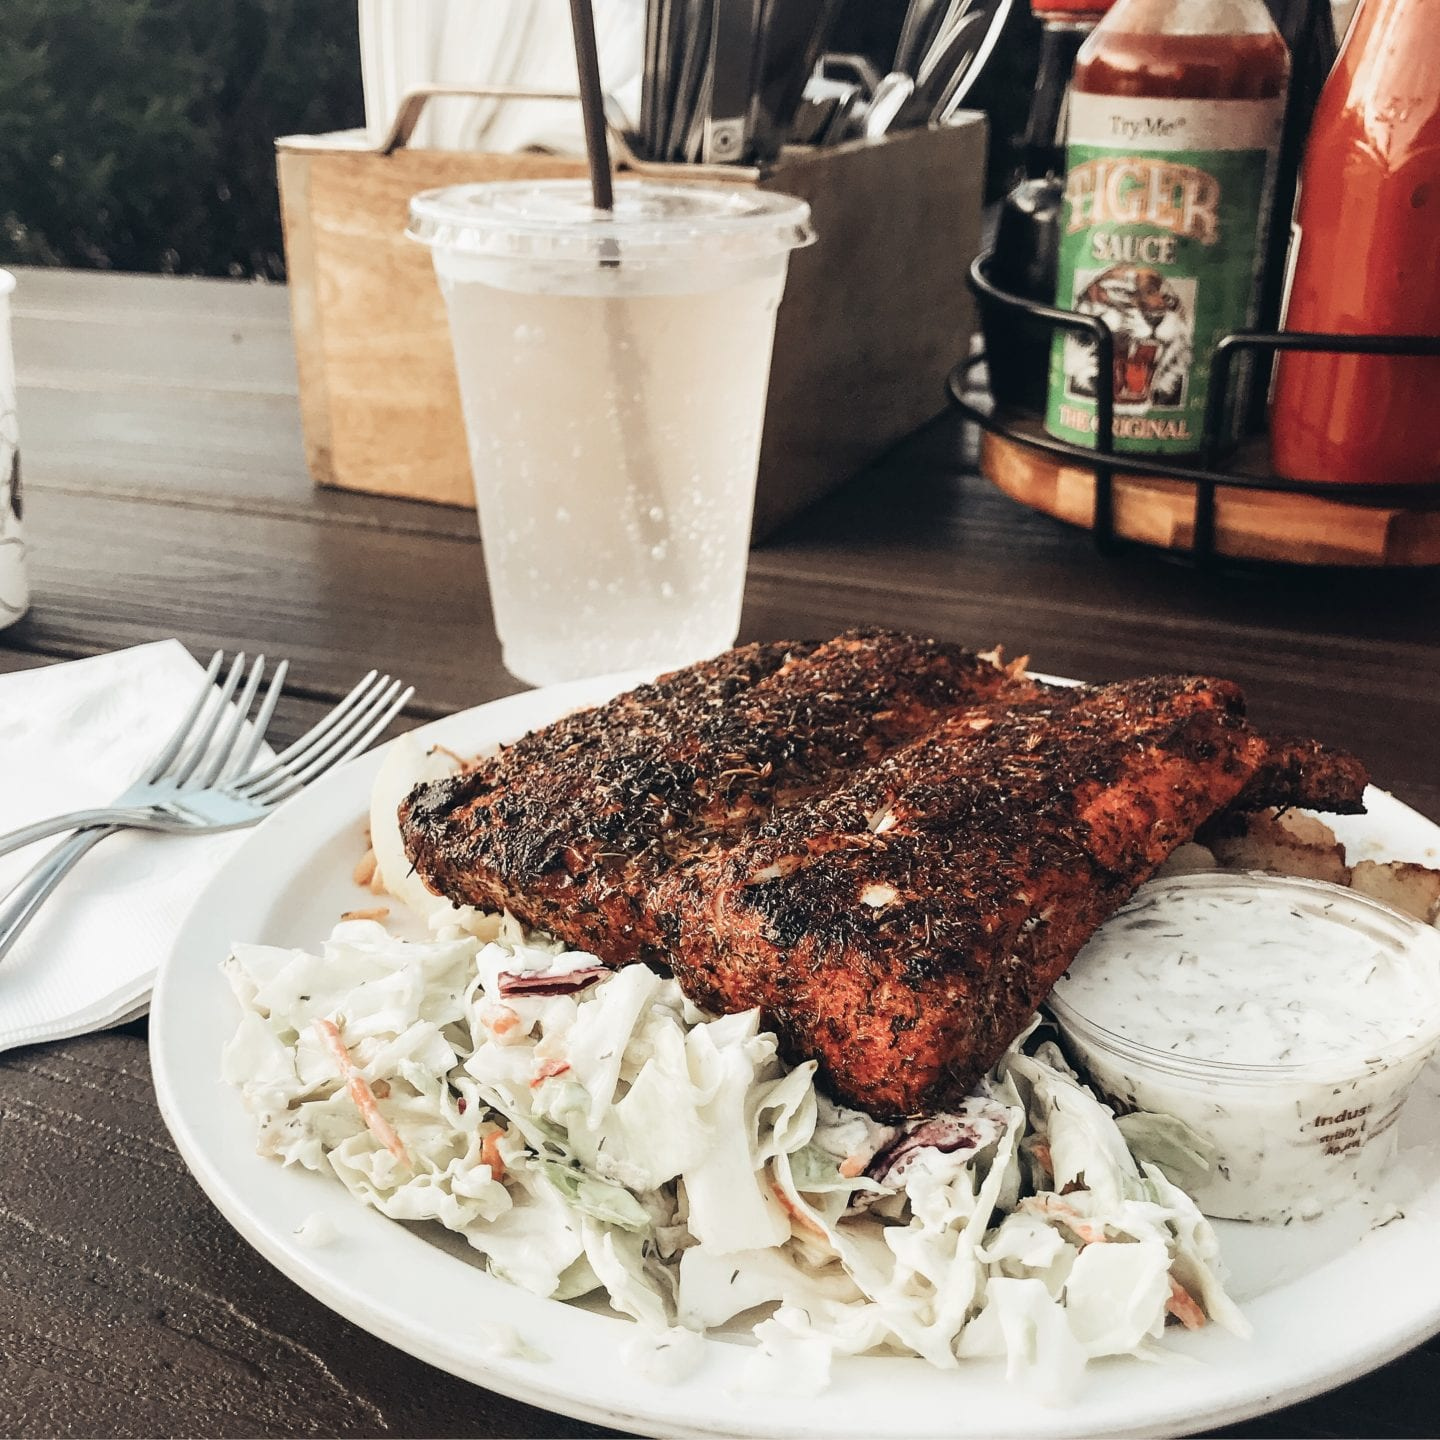 PAIA FISH MARKET I Maui travel guide I Hawaii Travel Guide I via justaddglam.com   Top Things to Do in Maui featured by top San Francisco travel blog, Just Add Glam: Paia Fish Market